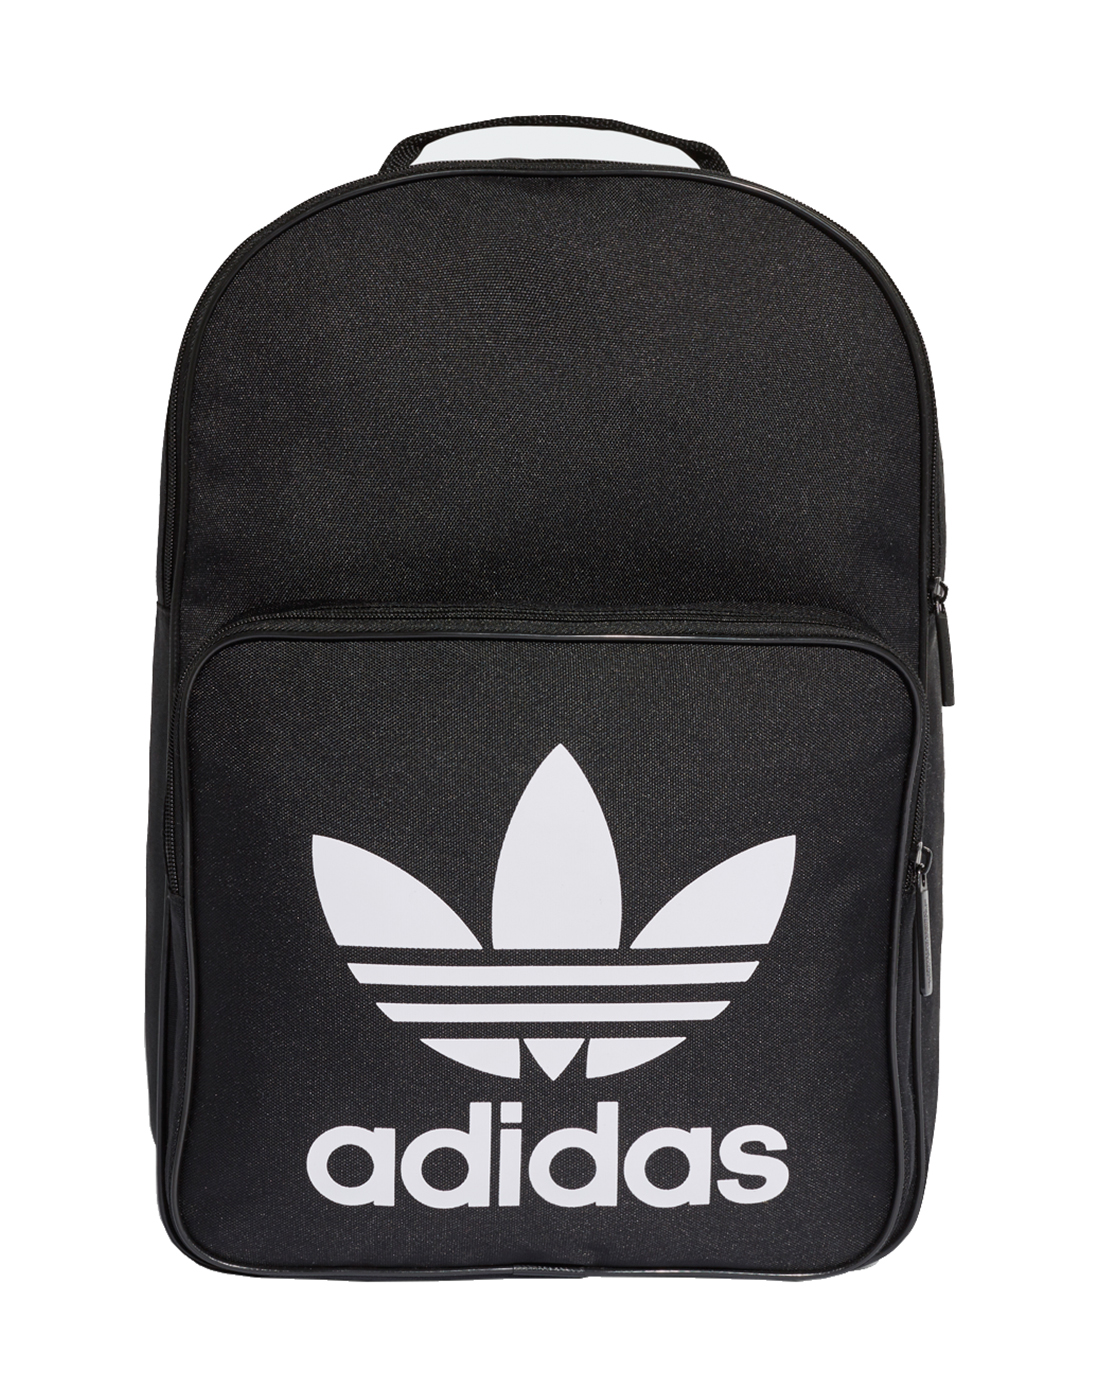 adidas Originals. Small Trefoil Backpack. Small Trefoil Backpack ... 61b78bcd3d099